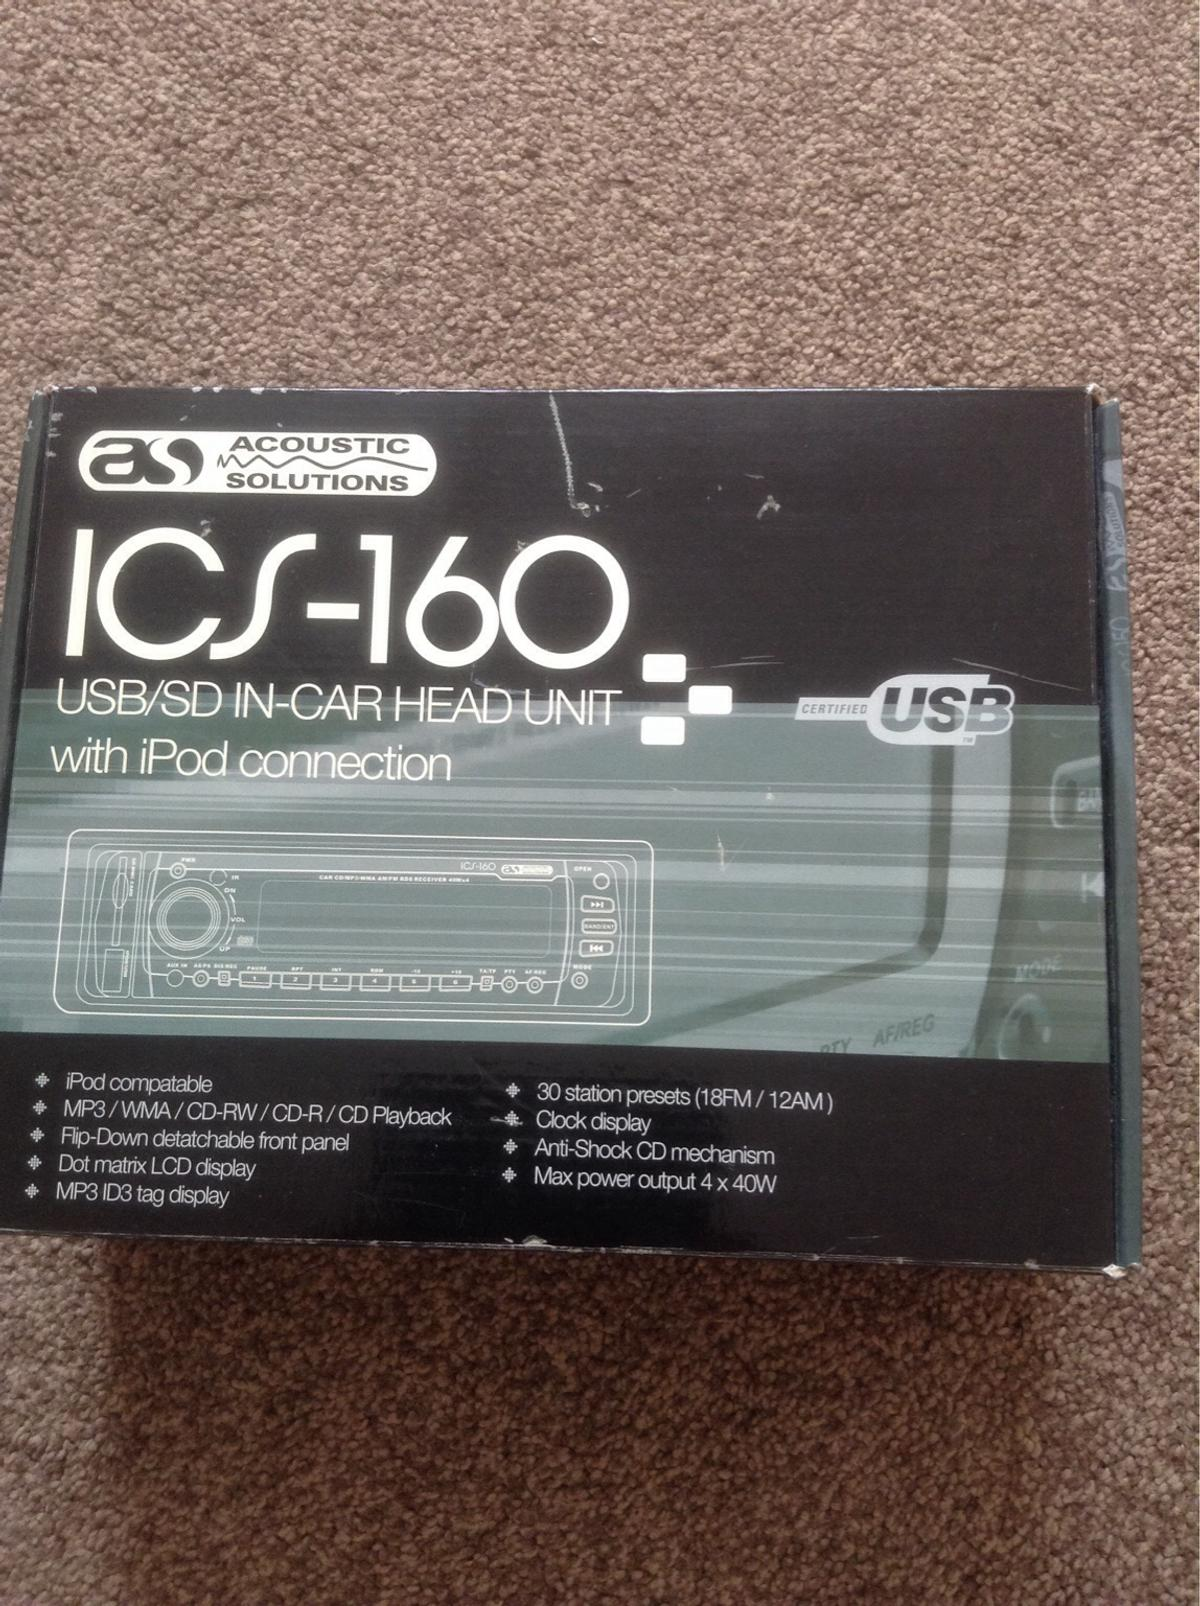 ICS-160 USB/SD in-car radio in KT19 Ewell for £50 00 for sale - Shpock